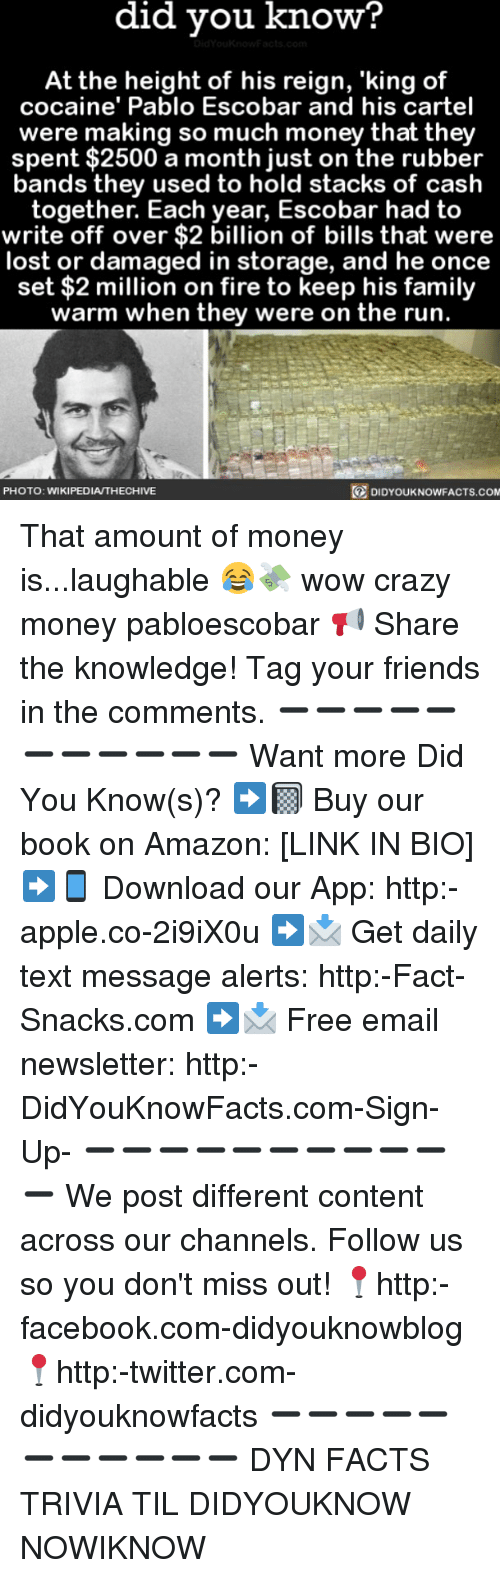 Amazon, Apple, and Crazy: did vou know?  At the height of his reign, 'king of  cocaine' Pablo Escobar and his cartel  were making so much money that they  spent $2500 a month just on the rubber  bands they used to hold stacks of cash  together. Each year, Escobar had to  write off over $2 billion of bills that were  lost or damaged in storage, and he once  set $2 million on fire to keep his family  warm when they were on the run.  PHOTO: WIKIPEDIA/THECHIVE  DIDYOUKNOWFACTS.co That amount of money is...laughable 😂💸 wow crazy money pabloescobar 📢 Share the knowledge! Tag your friends in the comments. ➖➖➖➖➖➖➖➖➖➖➖ Want more Did You Know(s)? ➡📓 Buy our book on Amazon: [LINK IN BIO] ➡📱 Download our App: http:-apple.co-2i9iX0u ➡📩 Get daily text message alerts: http:-Fact-Snacks.com ➡📩 Free email newsletter: http:-DidYouKnowFacts.com-Sign-Up- ➖➖➖➖➖➖➖➖➖➖➖ We post different content across our channels. Follow us so you don't miss out! 📍http:-facebook.com-didyouknowblog 📍http:-twitter.com-didyouknowfacts ➖➖➖➖➖➖➖➖➖➖➖ DYN FACTS TRIVIA TIL DIDYOUKNOW NOWIKNOW